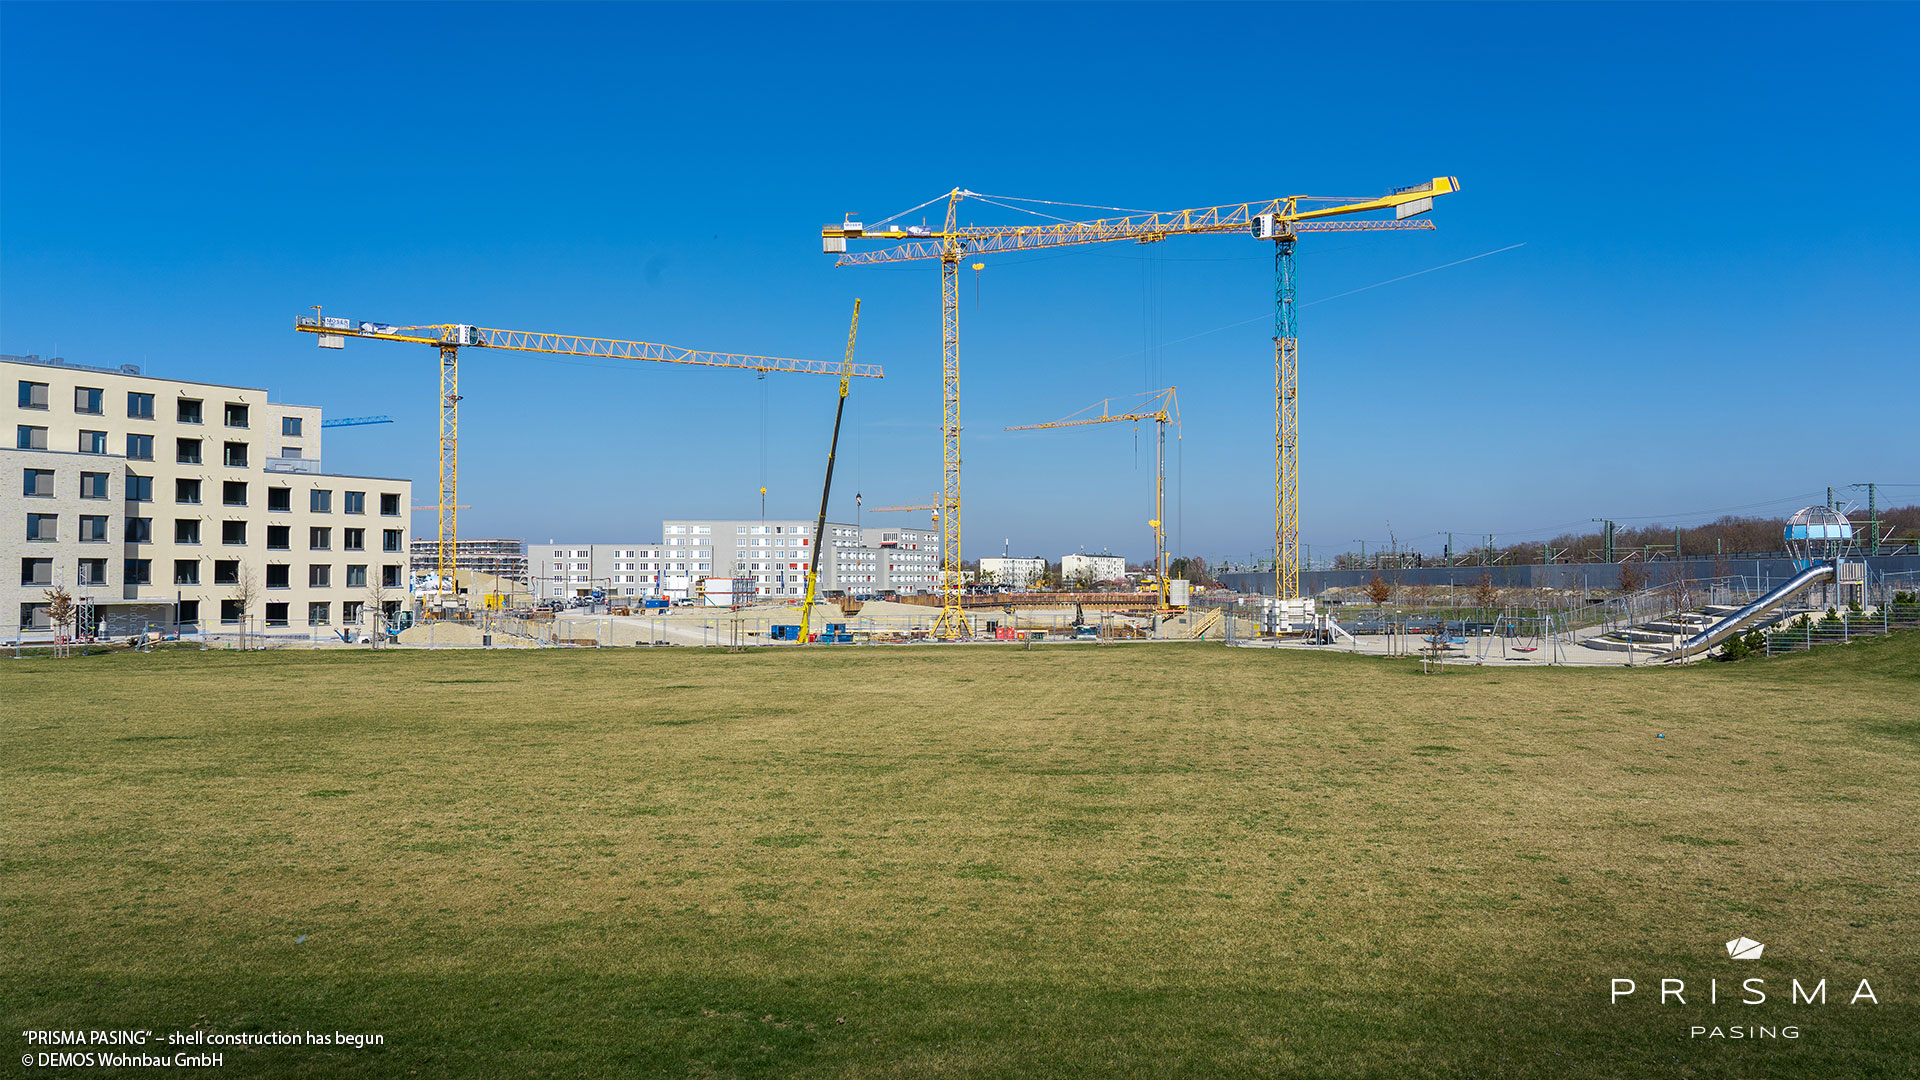 'PRISMA PASING' in Pasing-Obermenzing: Shell construction work has begun